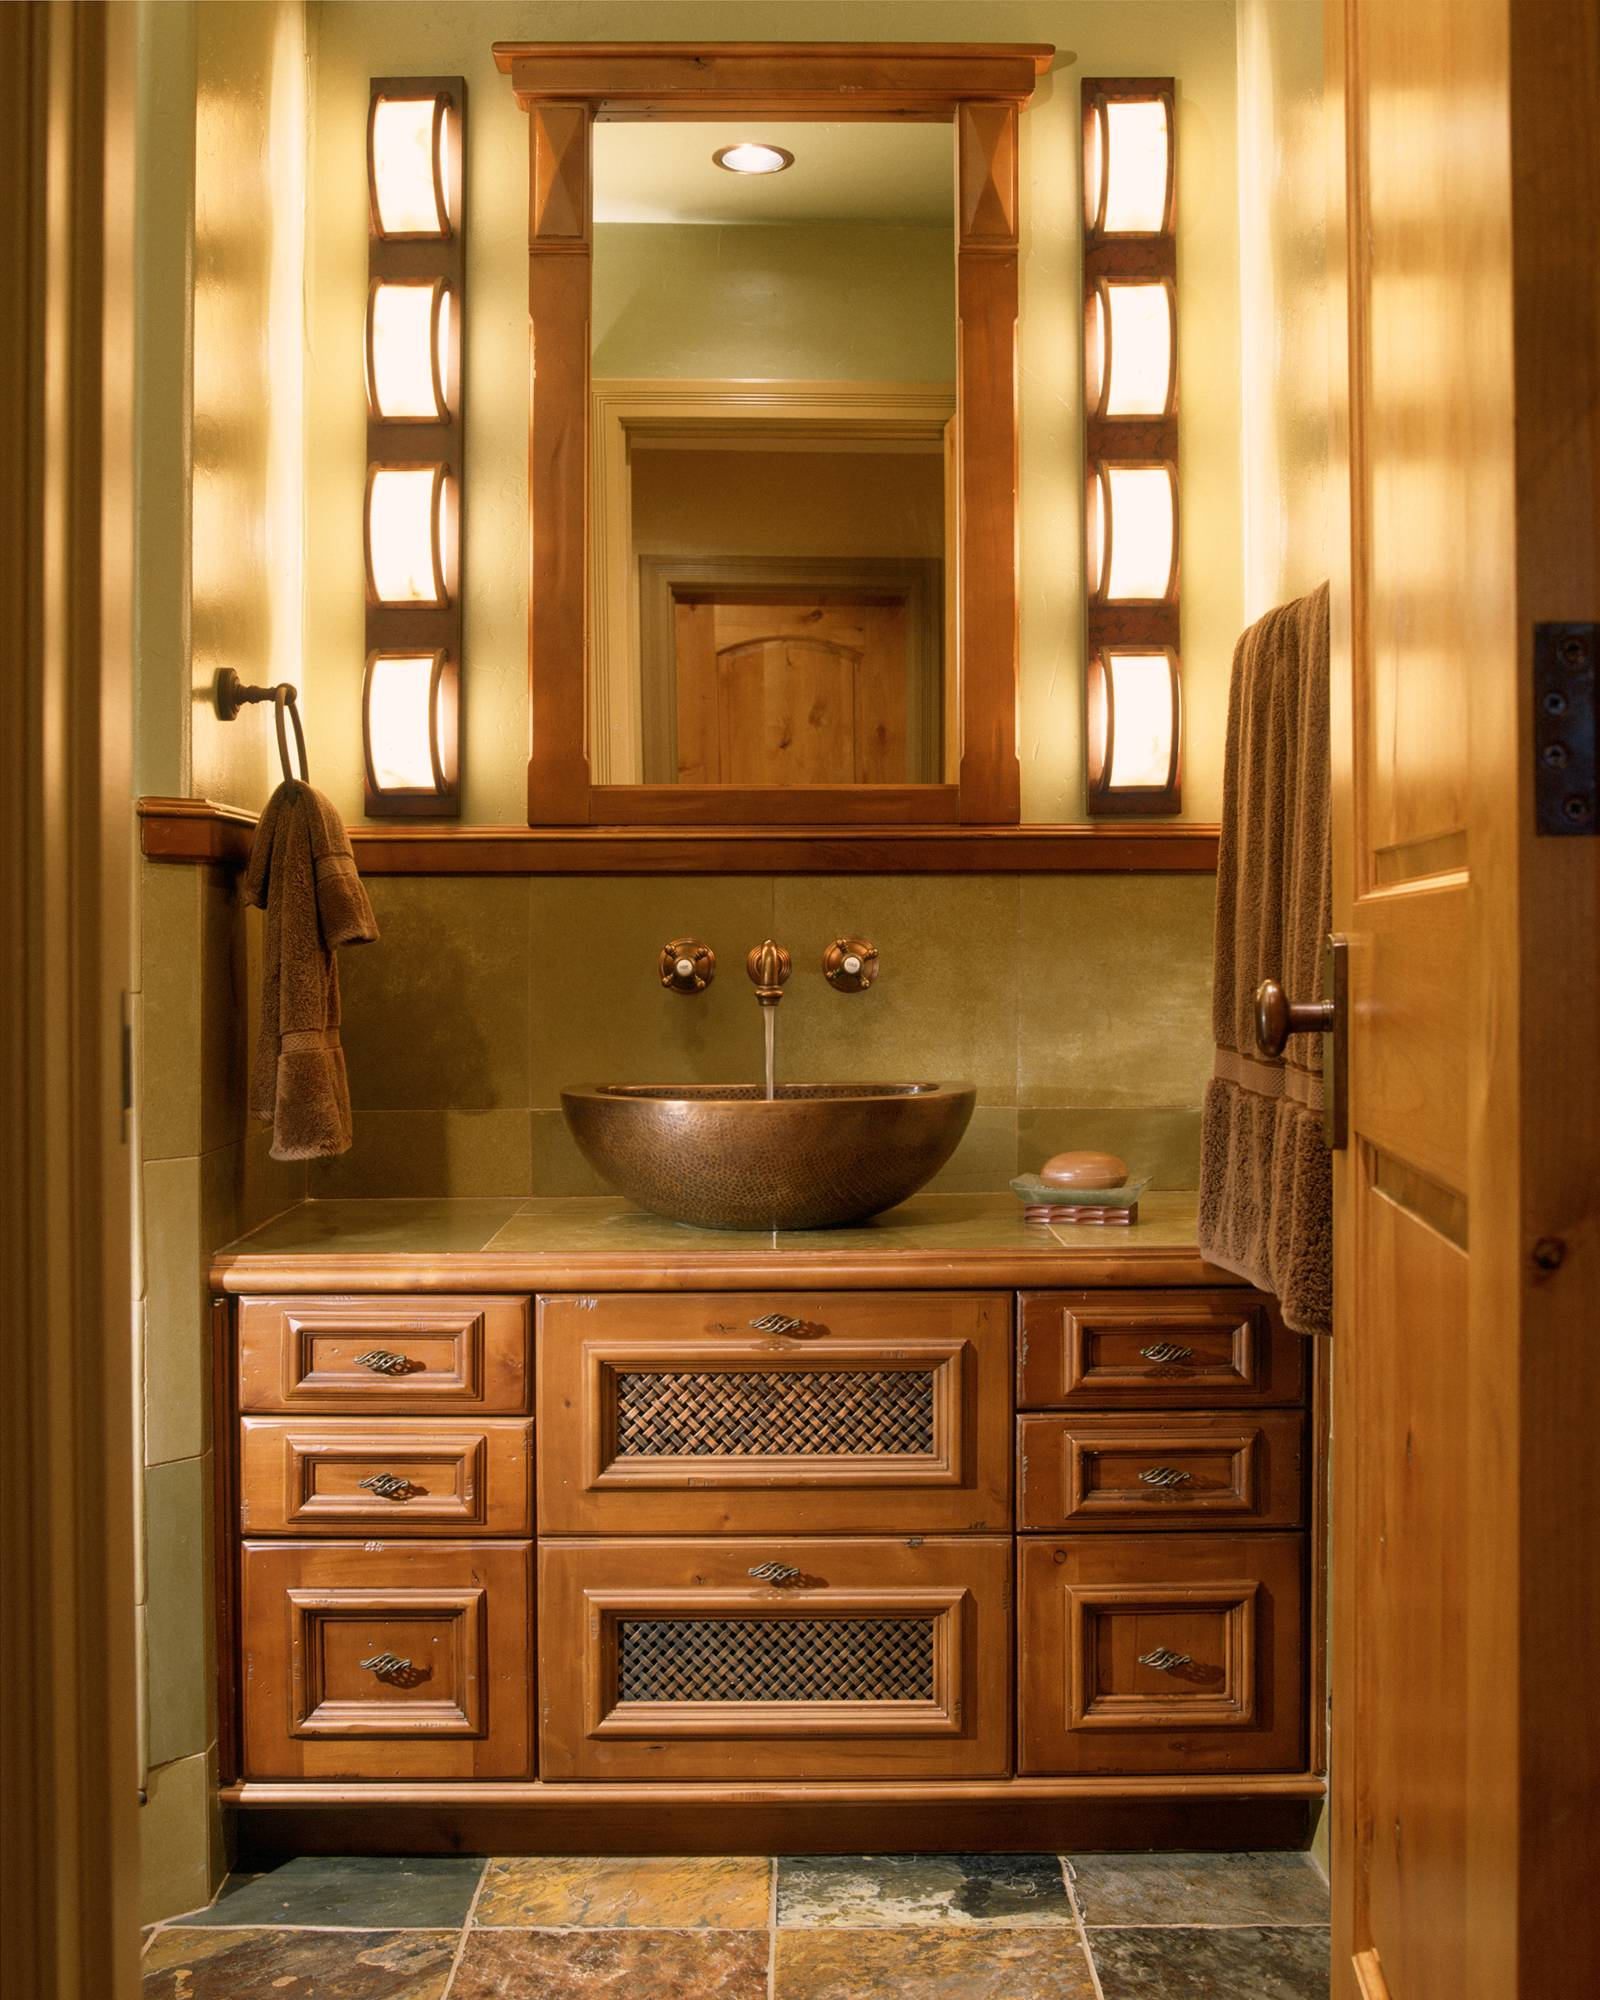 matching faucets with bathroom - copper accent